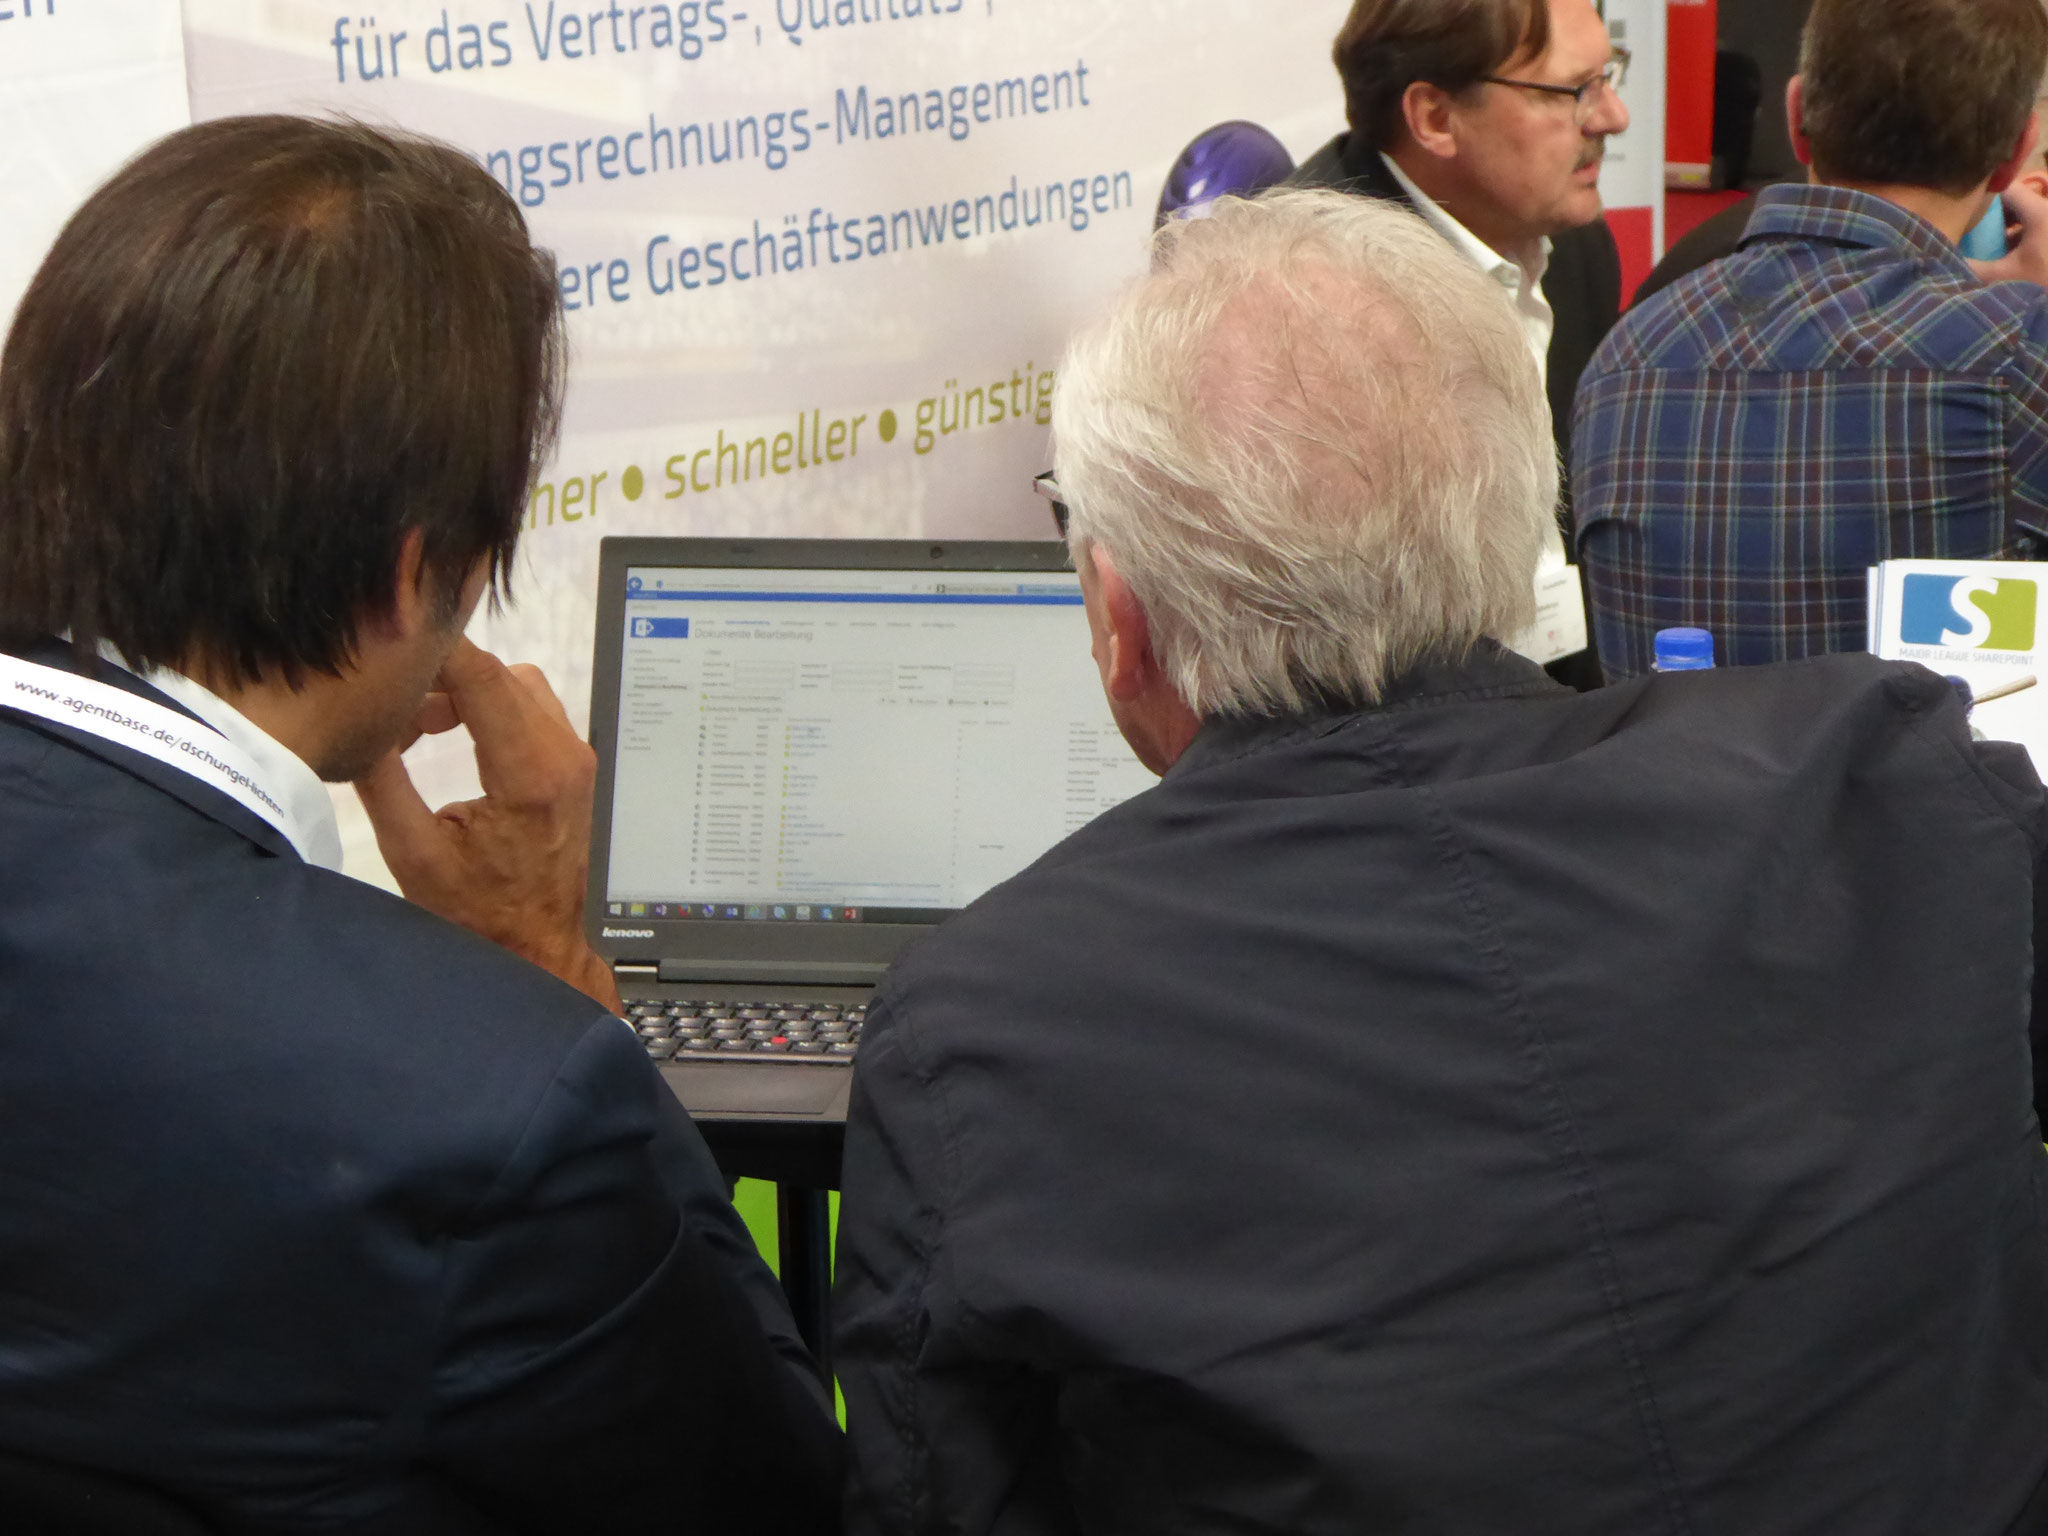 MAJOR LEAGUE auf der IT & MEDIA 2016 in Bielefeld